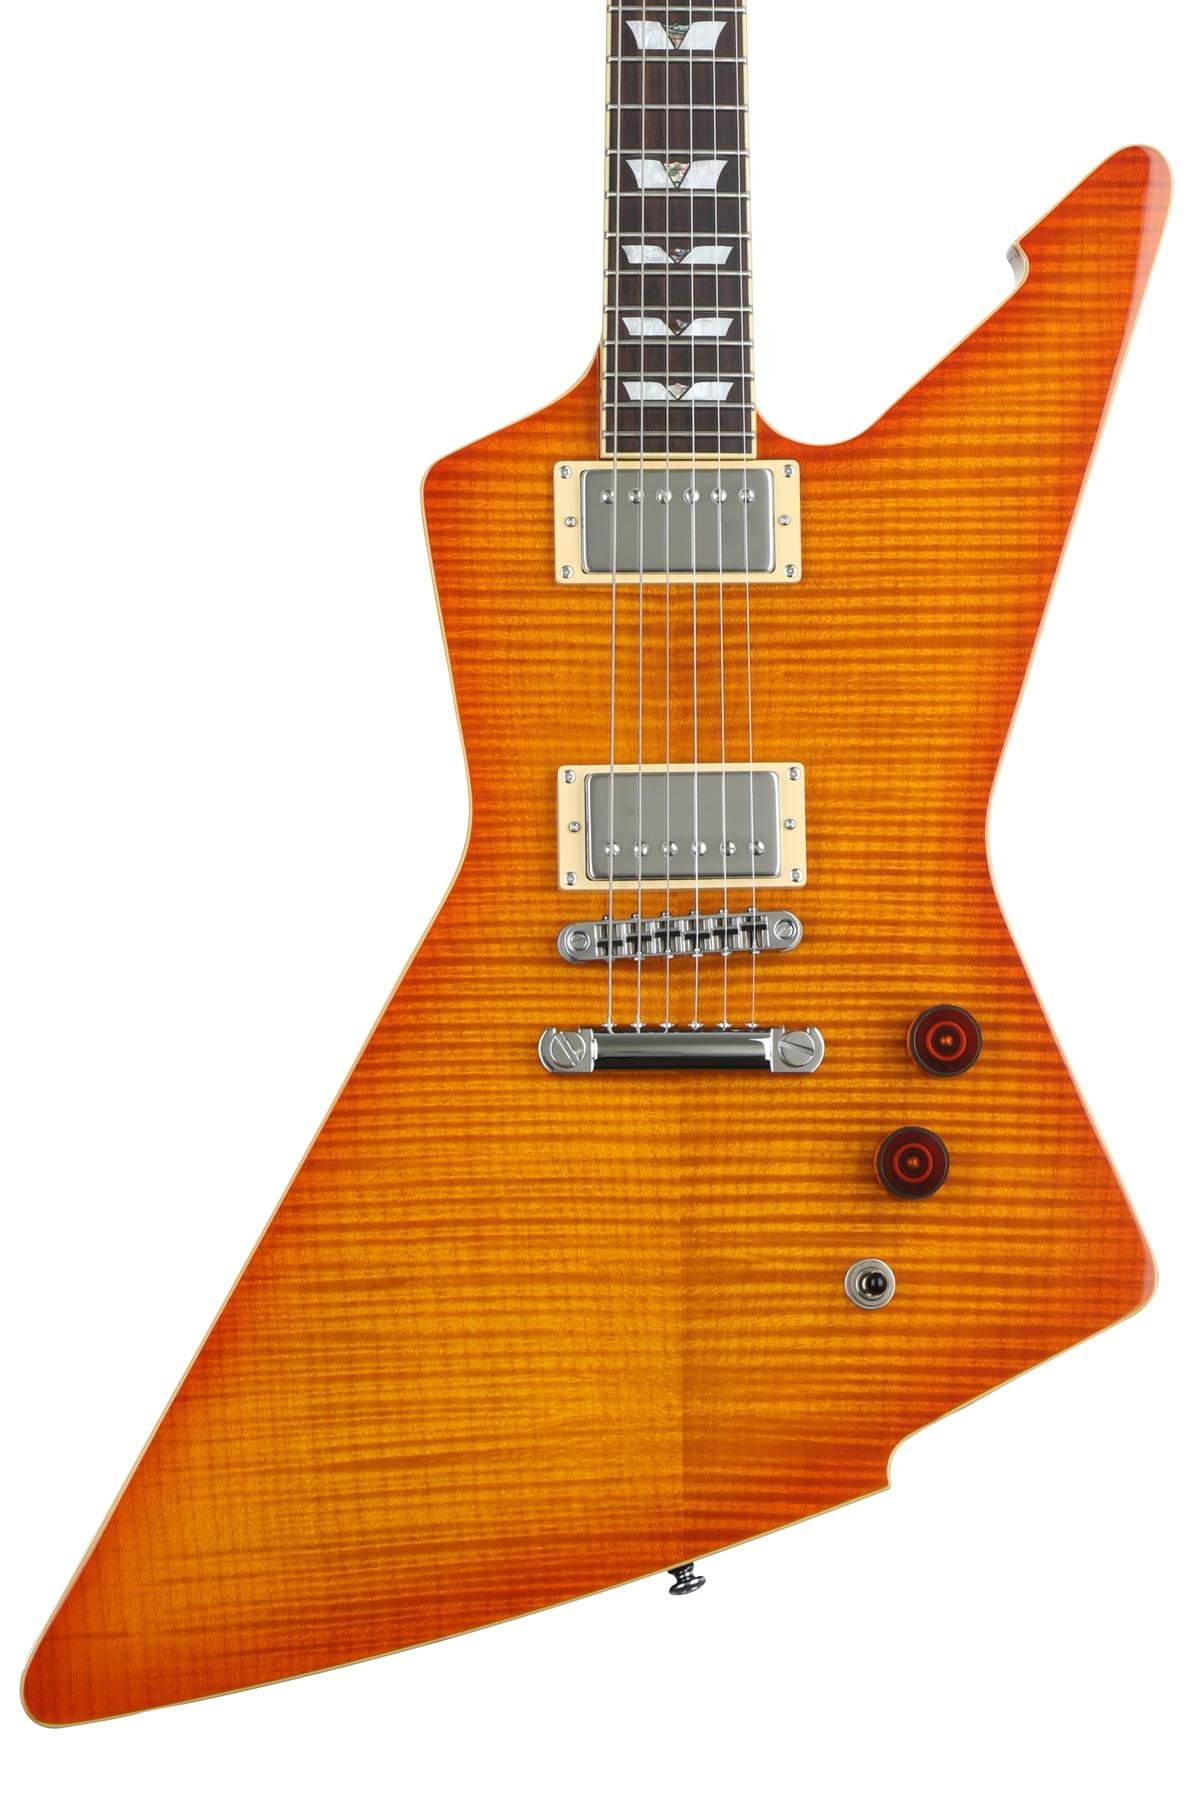 Schecter E 1 Standard Honeyburst Sweetwater Humbuckers 3way Toggle Switch Volume Tone Coil Tap Reverse Image